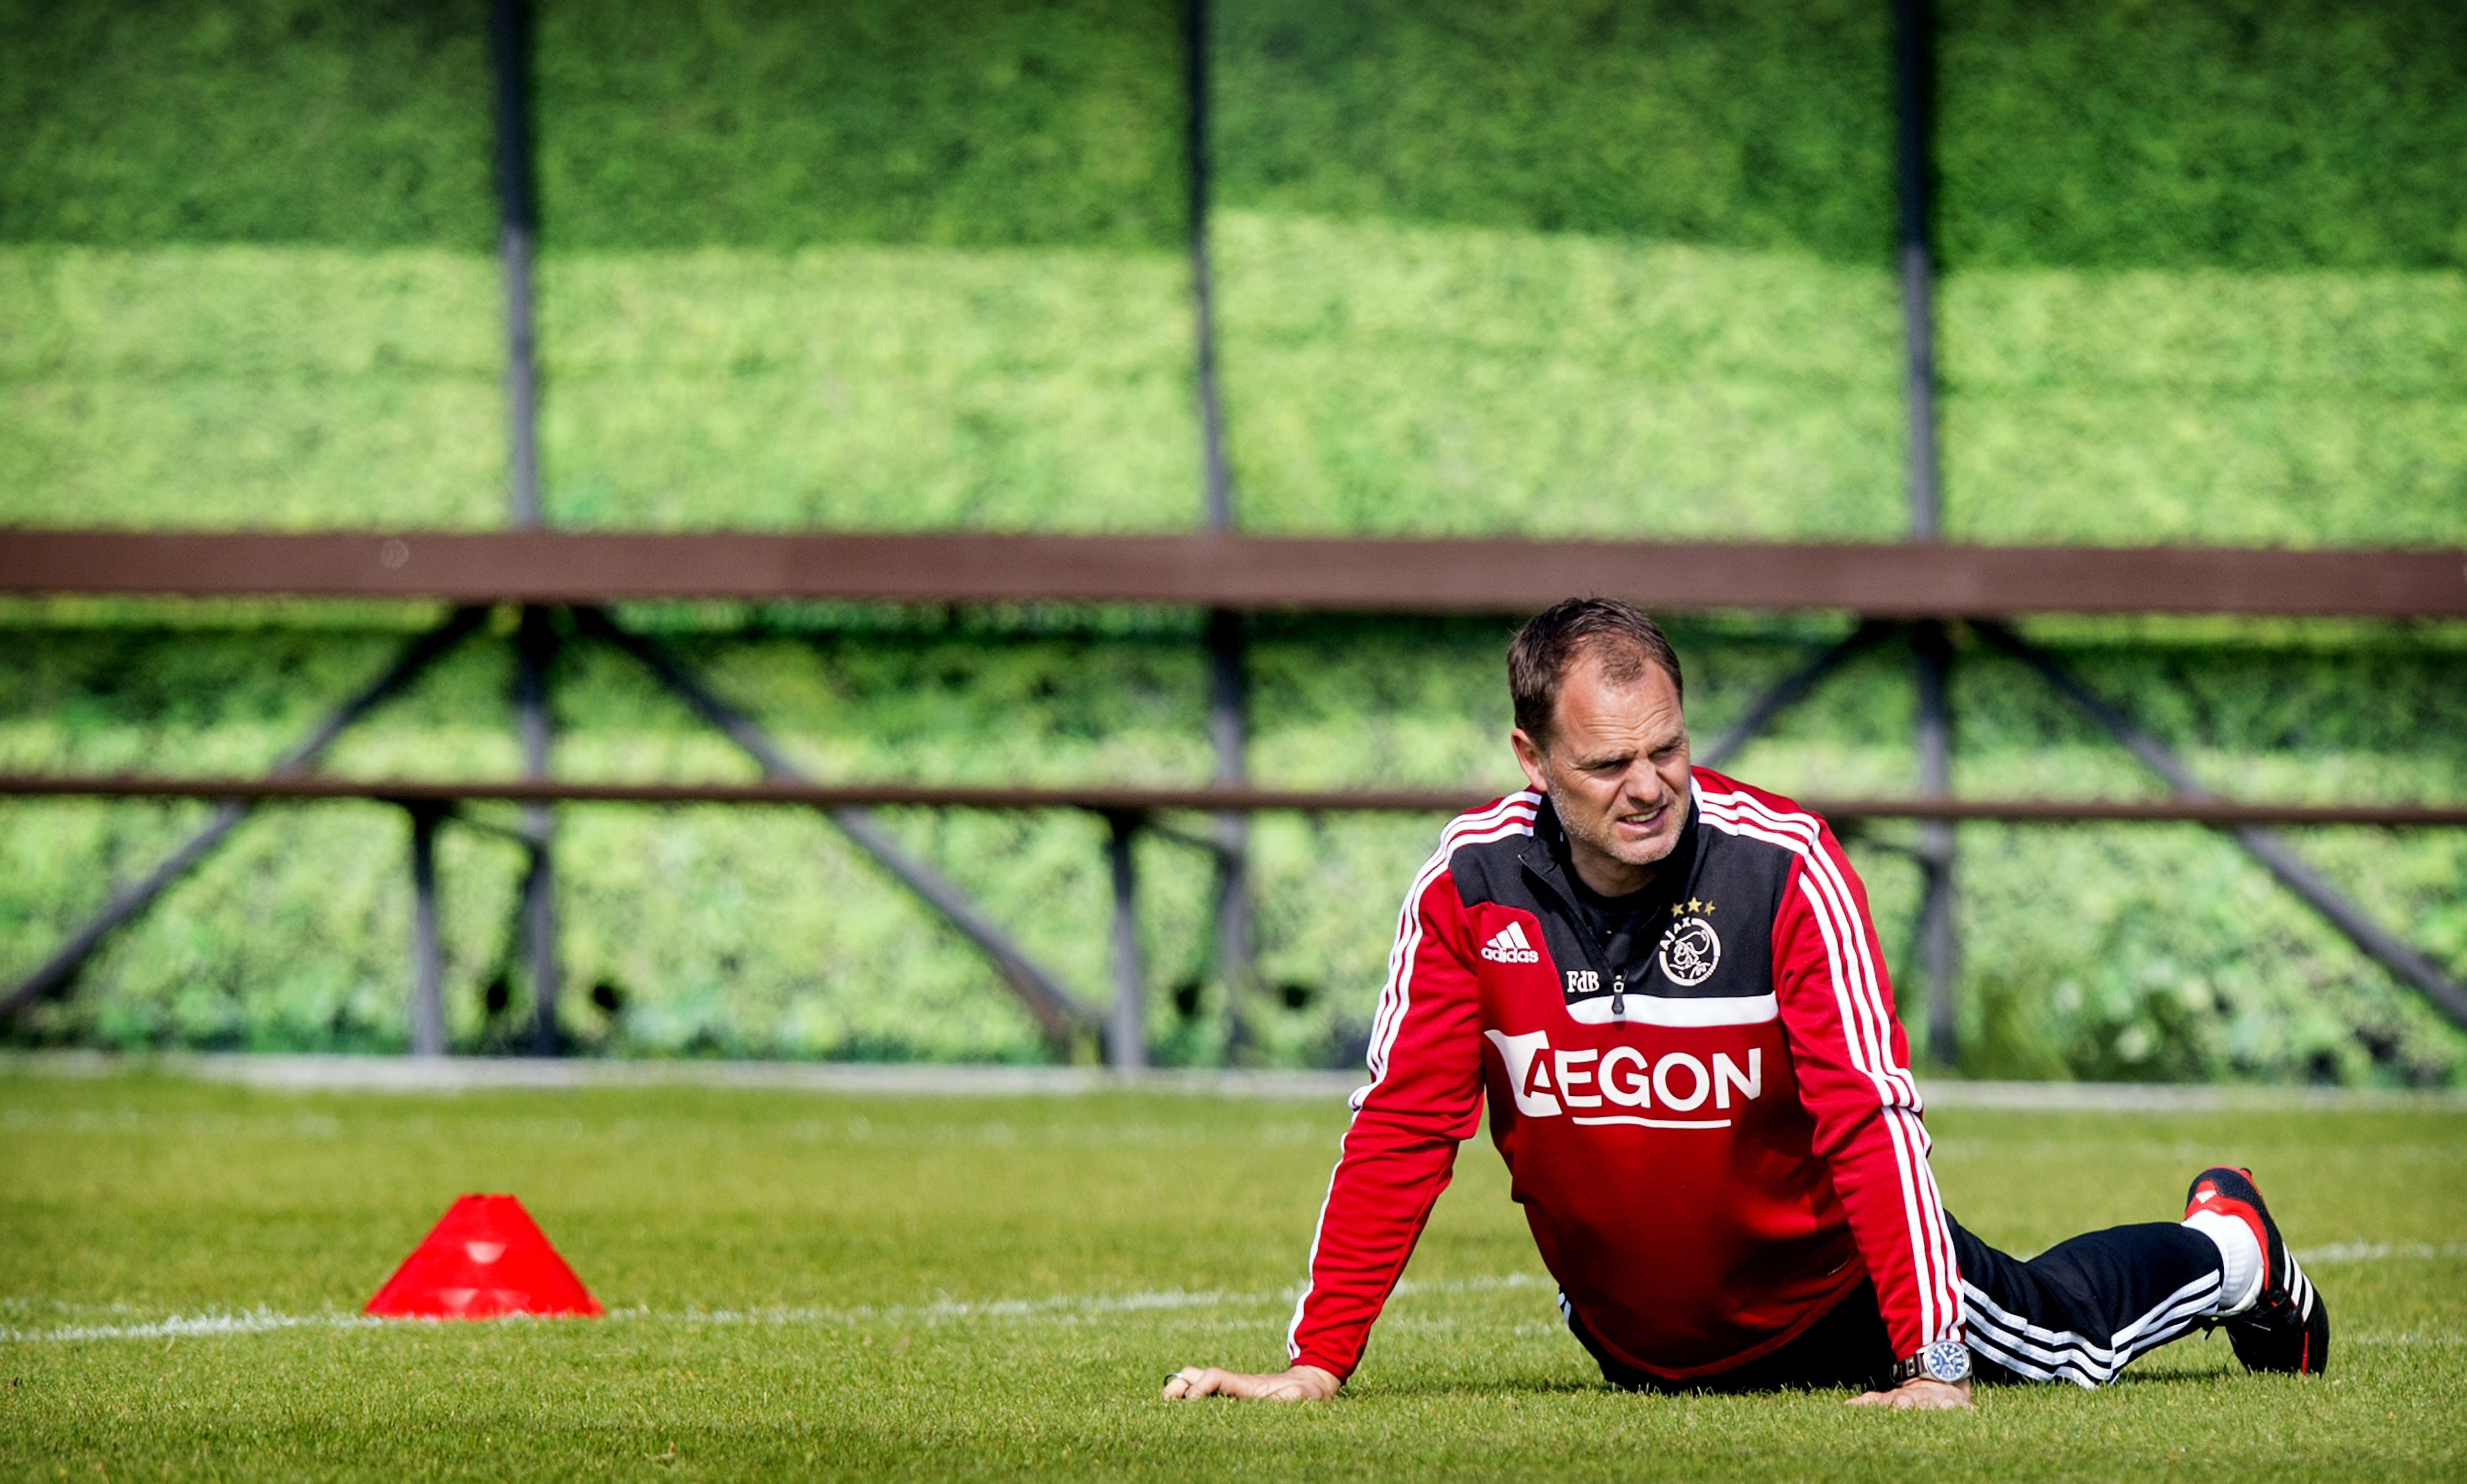 Ajax Amsterdam's head coach Frank de Boer warms up during a training session of the football team in Amsterdam, on April 25, 2014. Ajax will face Heracles Almelo on April 27. Ajax leads the Dutch First League. AFP PHOTO / ANP KOEN VAN WEEL - Netherlands out - Belgium out (Photo credit should read Koen van Weel/AFP/Getty Images)